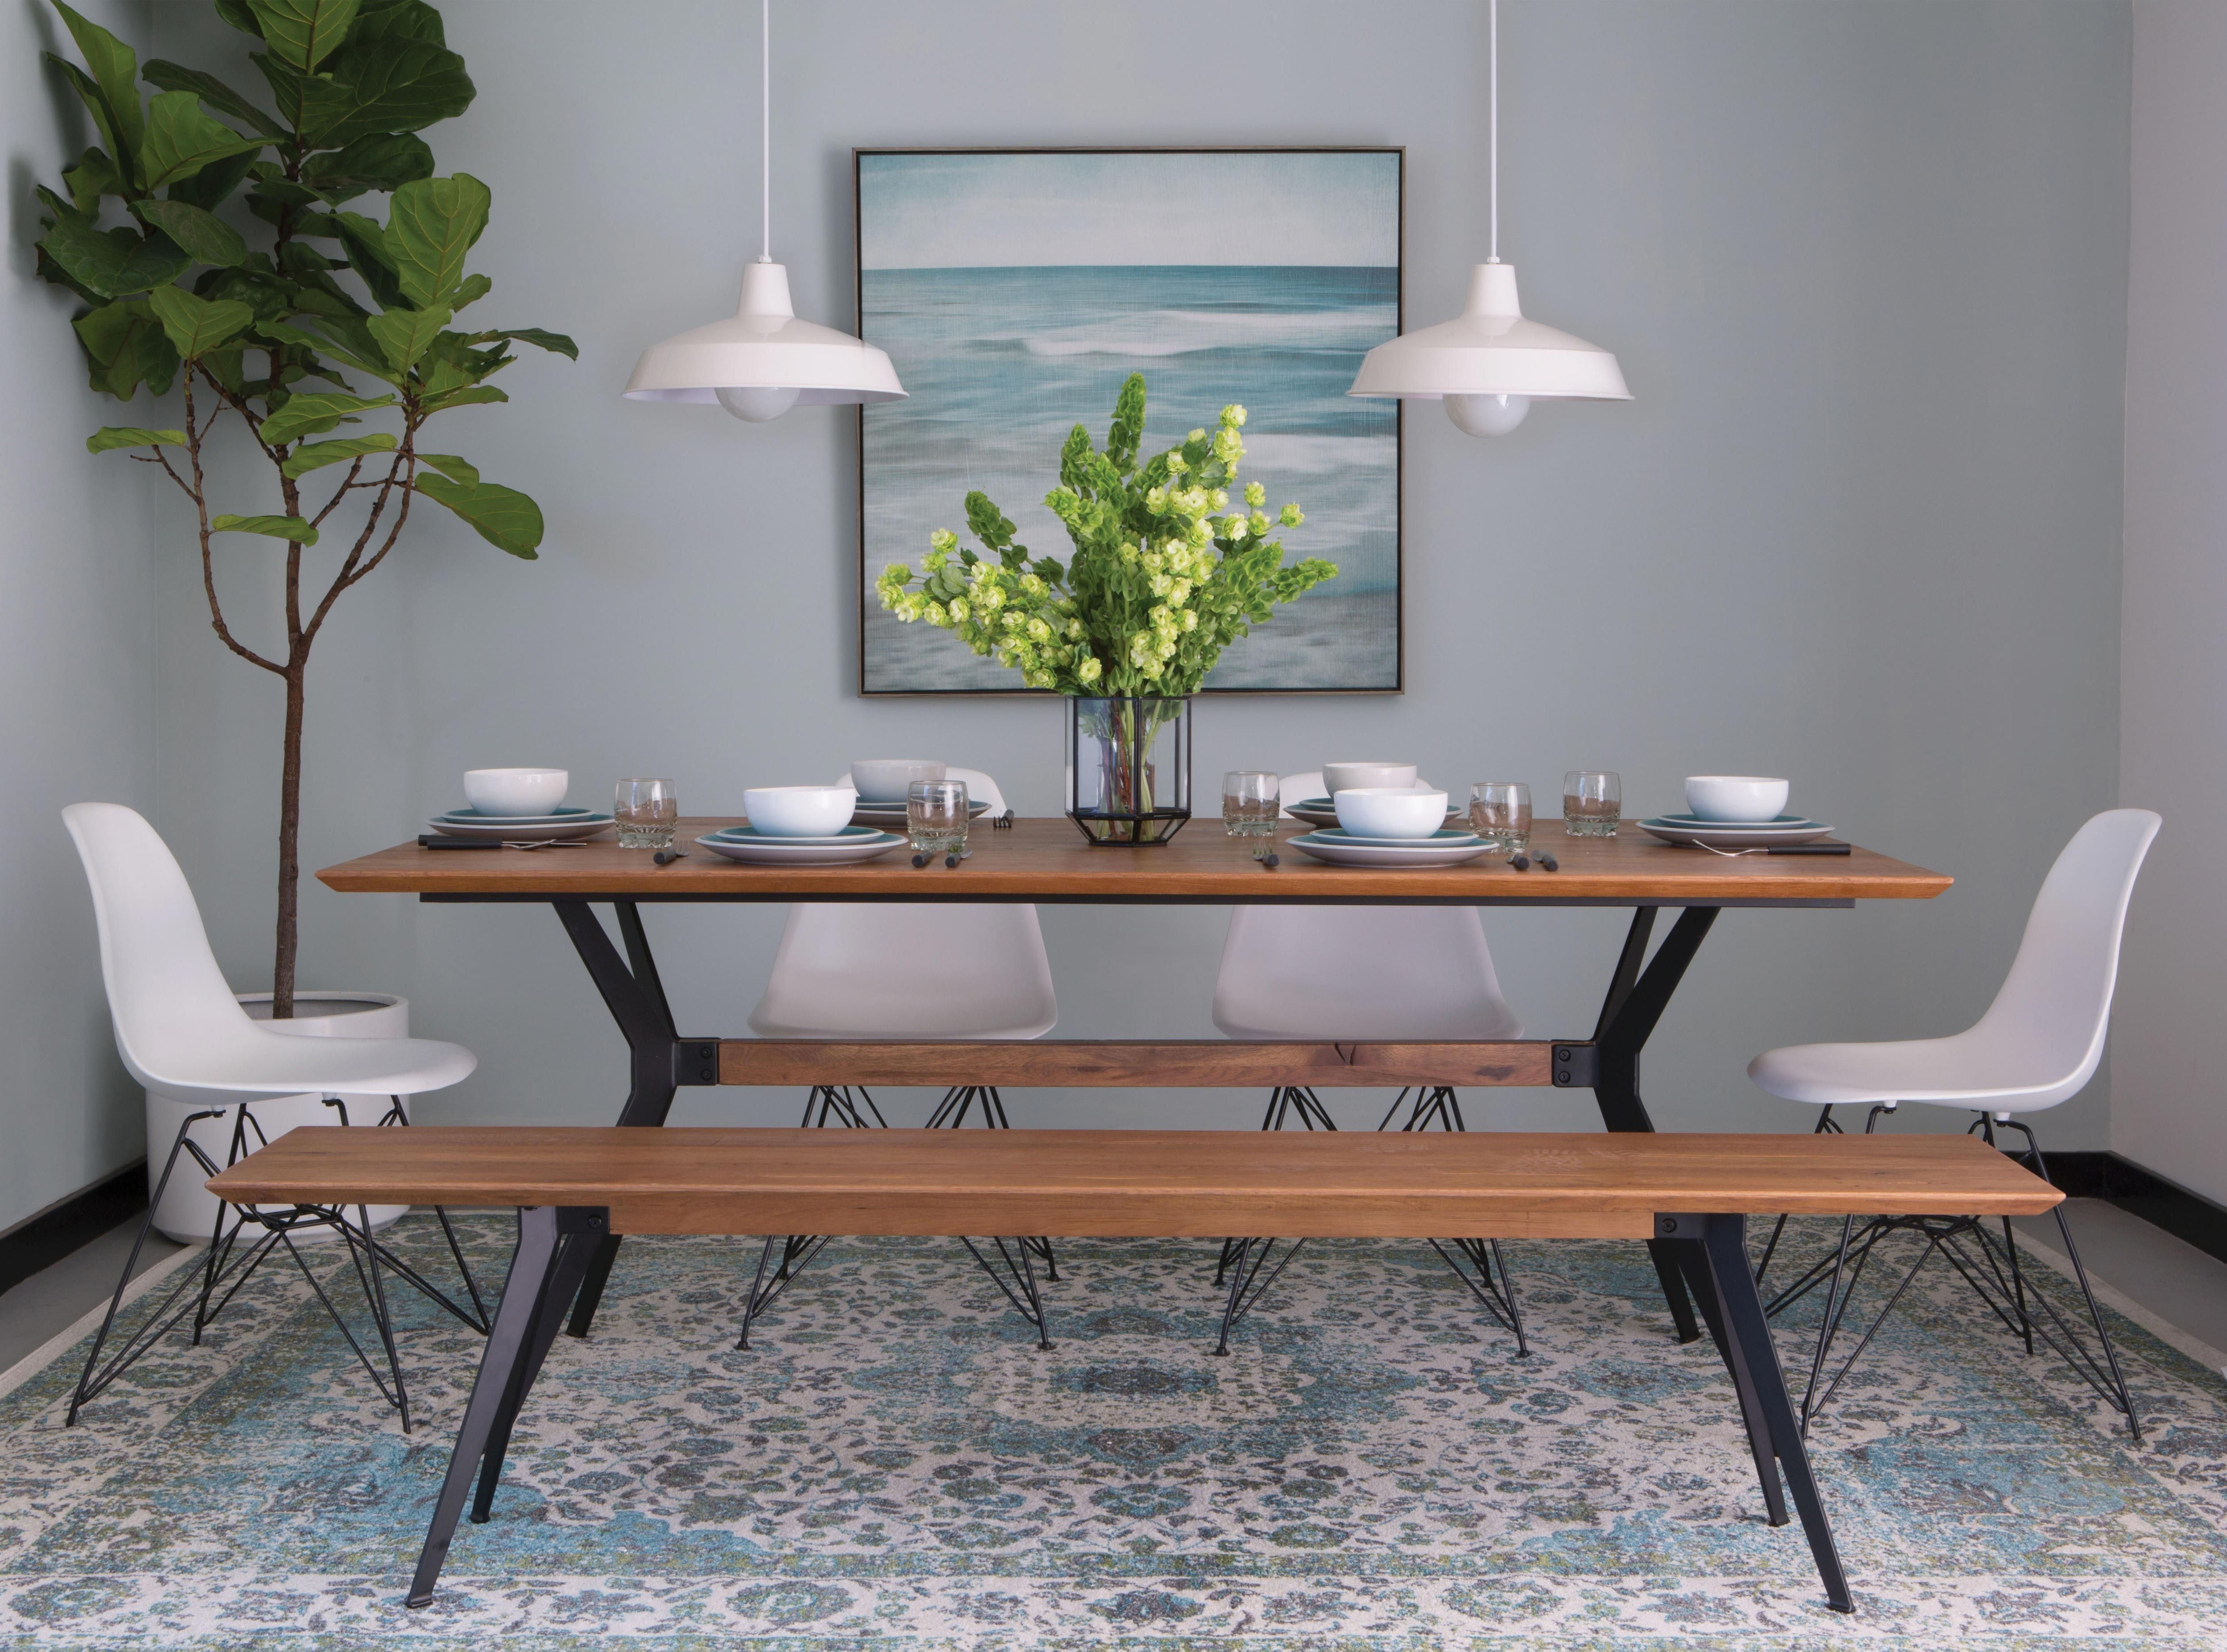 Weaver Dining Table In 2018 | Dining Room | Pinterest | Dining Regarding Most Recent Caira Black 7 Piece Dining Sets With Arm Chairs & Diamond Back Chairs (View 13 of 20)